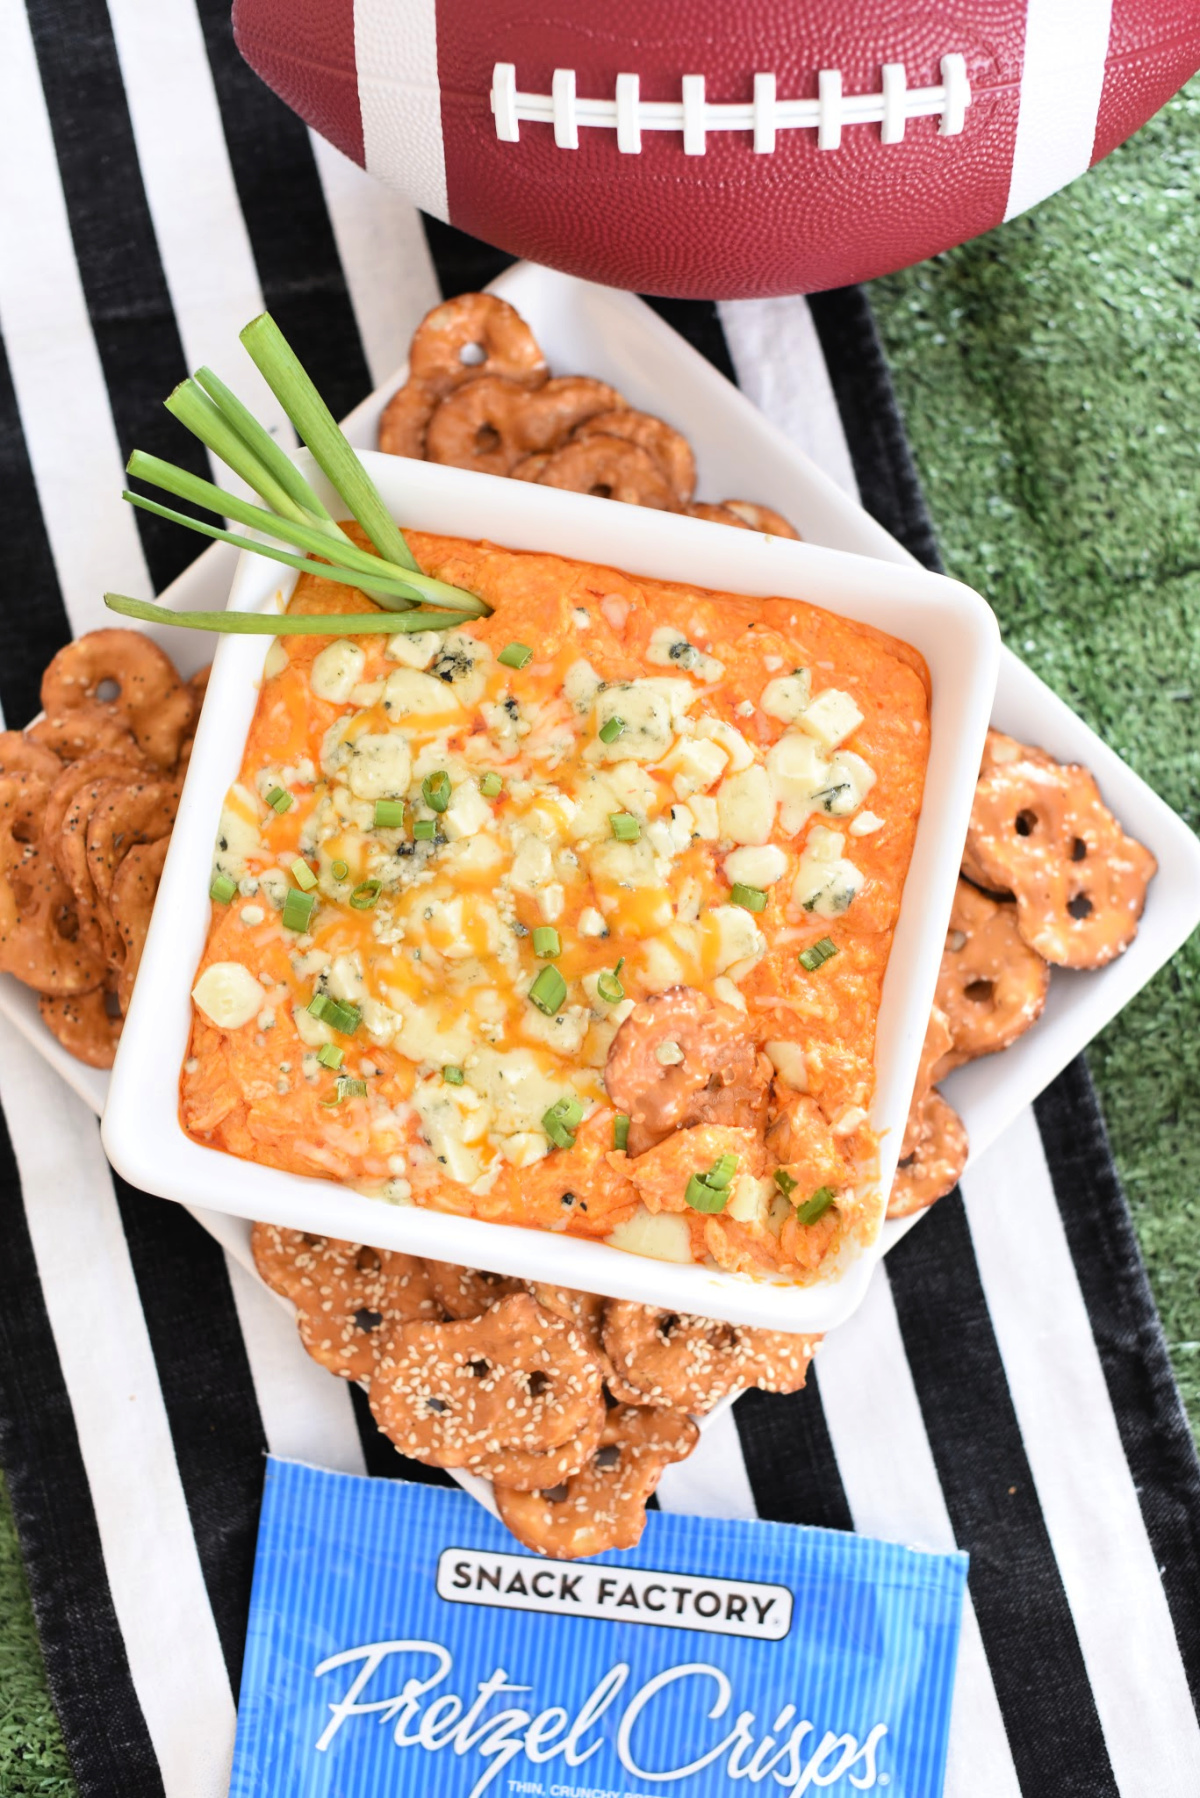 This game day buffalo dip is the perfect addition to any football party! This buffalo dip is quick and simple, and tastes amazing! #gamedayfood #buffalodip #footballpartyfood #fundipideas